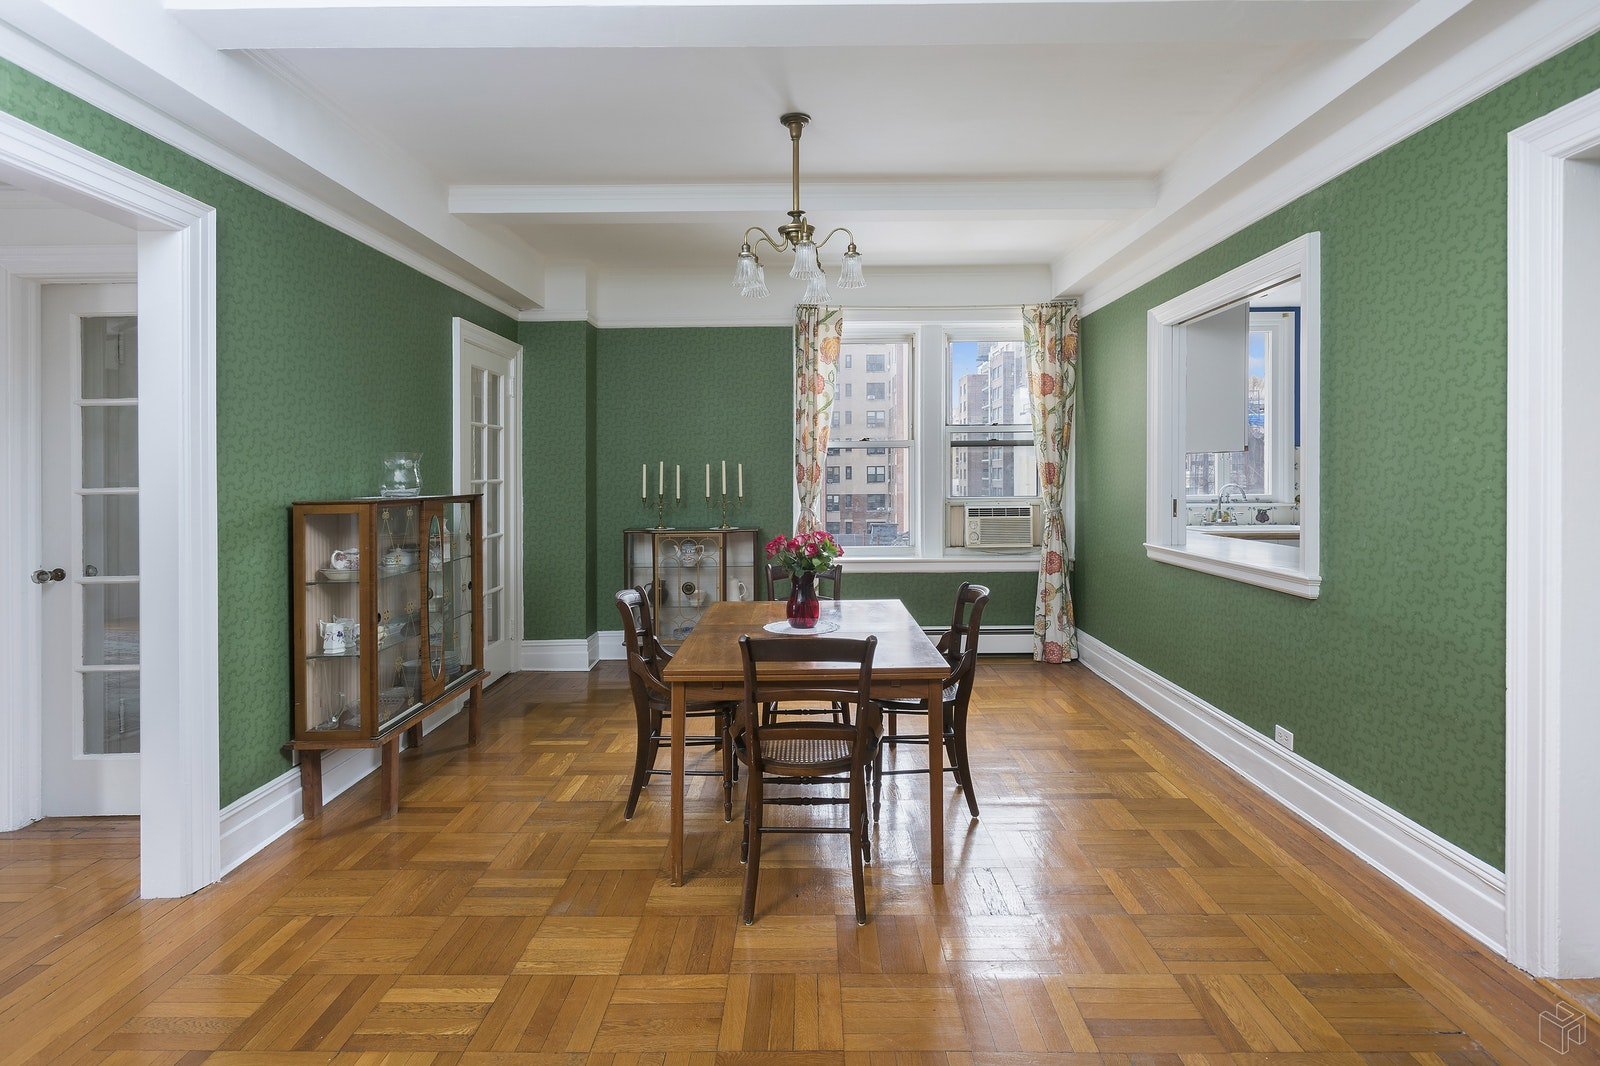 59 West 71st Street 8a, Upper West Side, NYC, 10023, $2,200,000, Sold Property, Halstead Real Estate, Photo 2